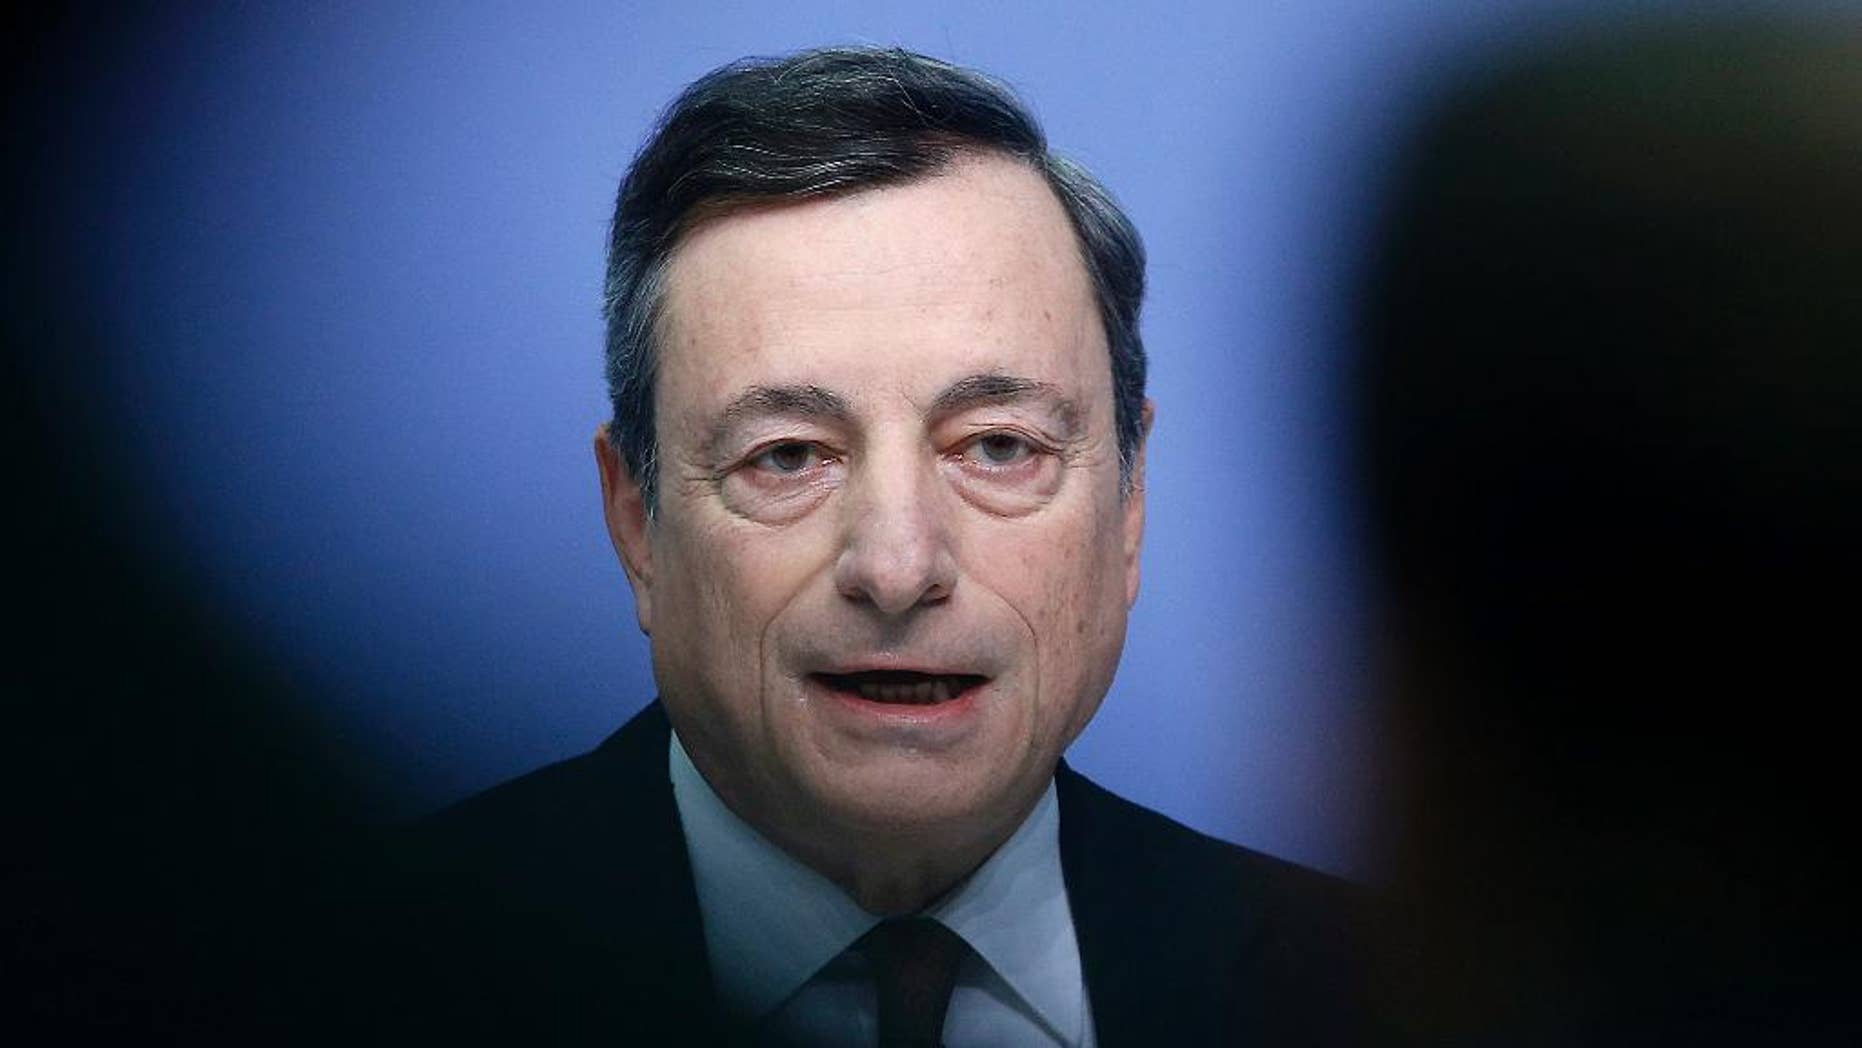 President of the European Central Bank Mario Draghi speaks during a news conference after a meeting of the governing council in Frankfurt, Germany, Thursday, Jan. 19, 2017. (AP Photo/Michael Probst)